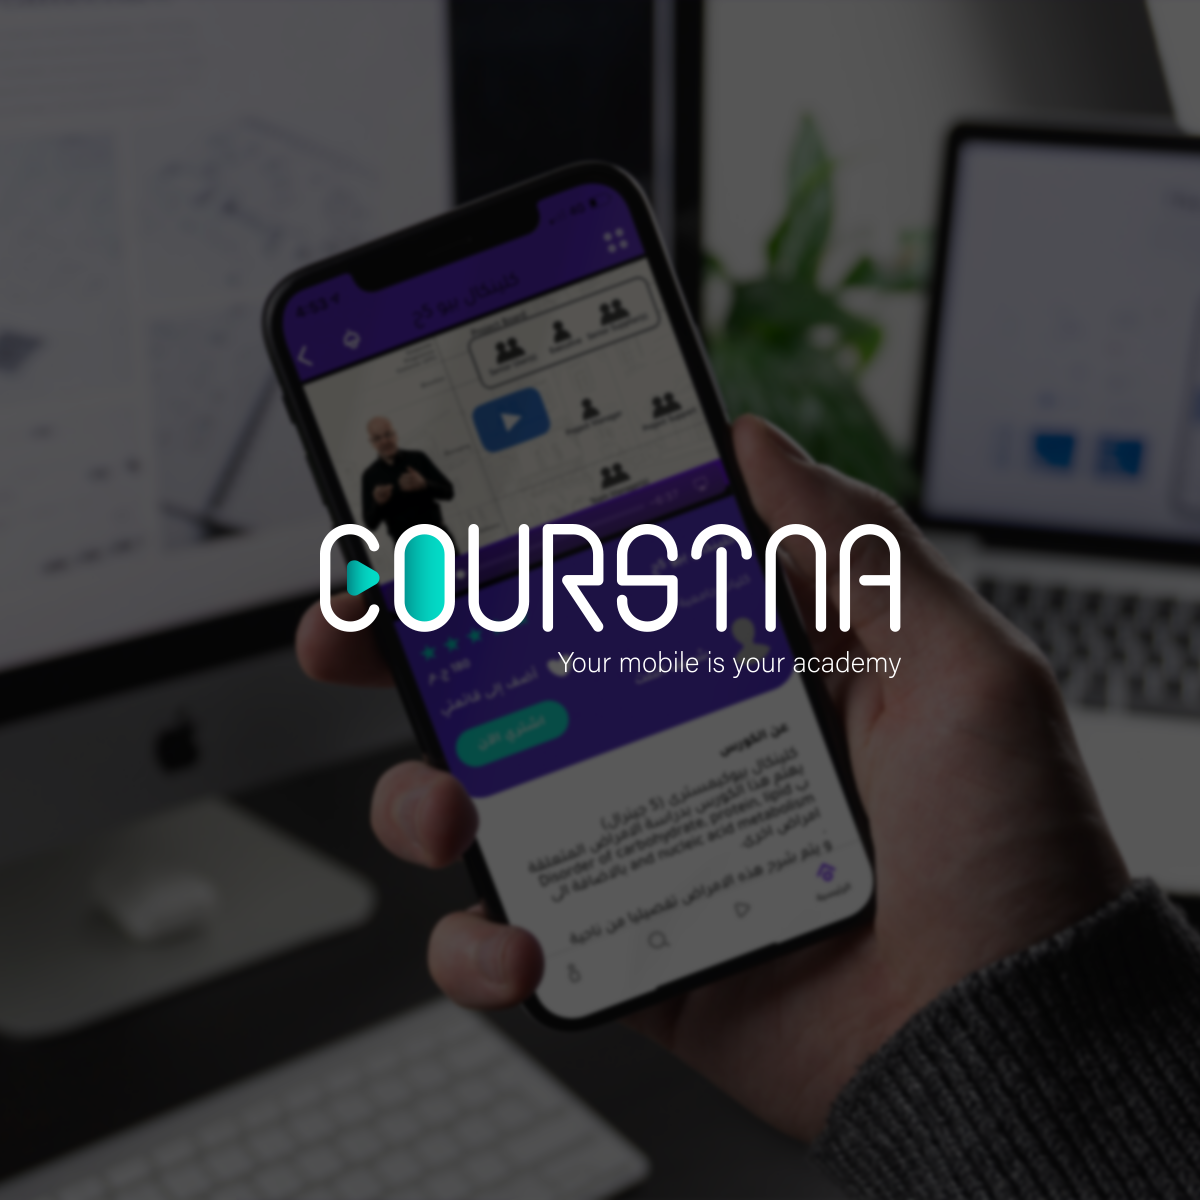 https://theportalagency.com/project/courstna-mobile-application/